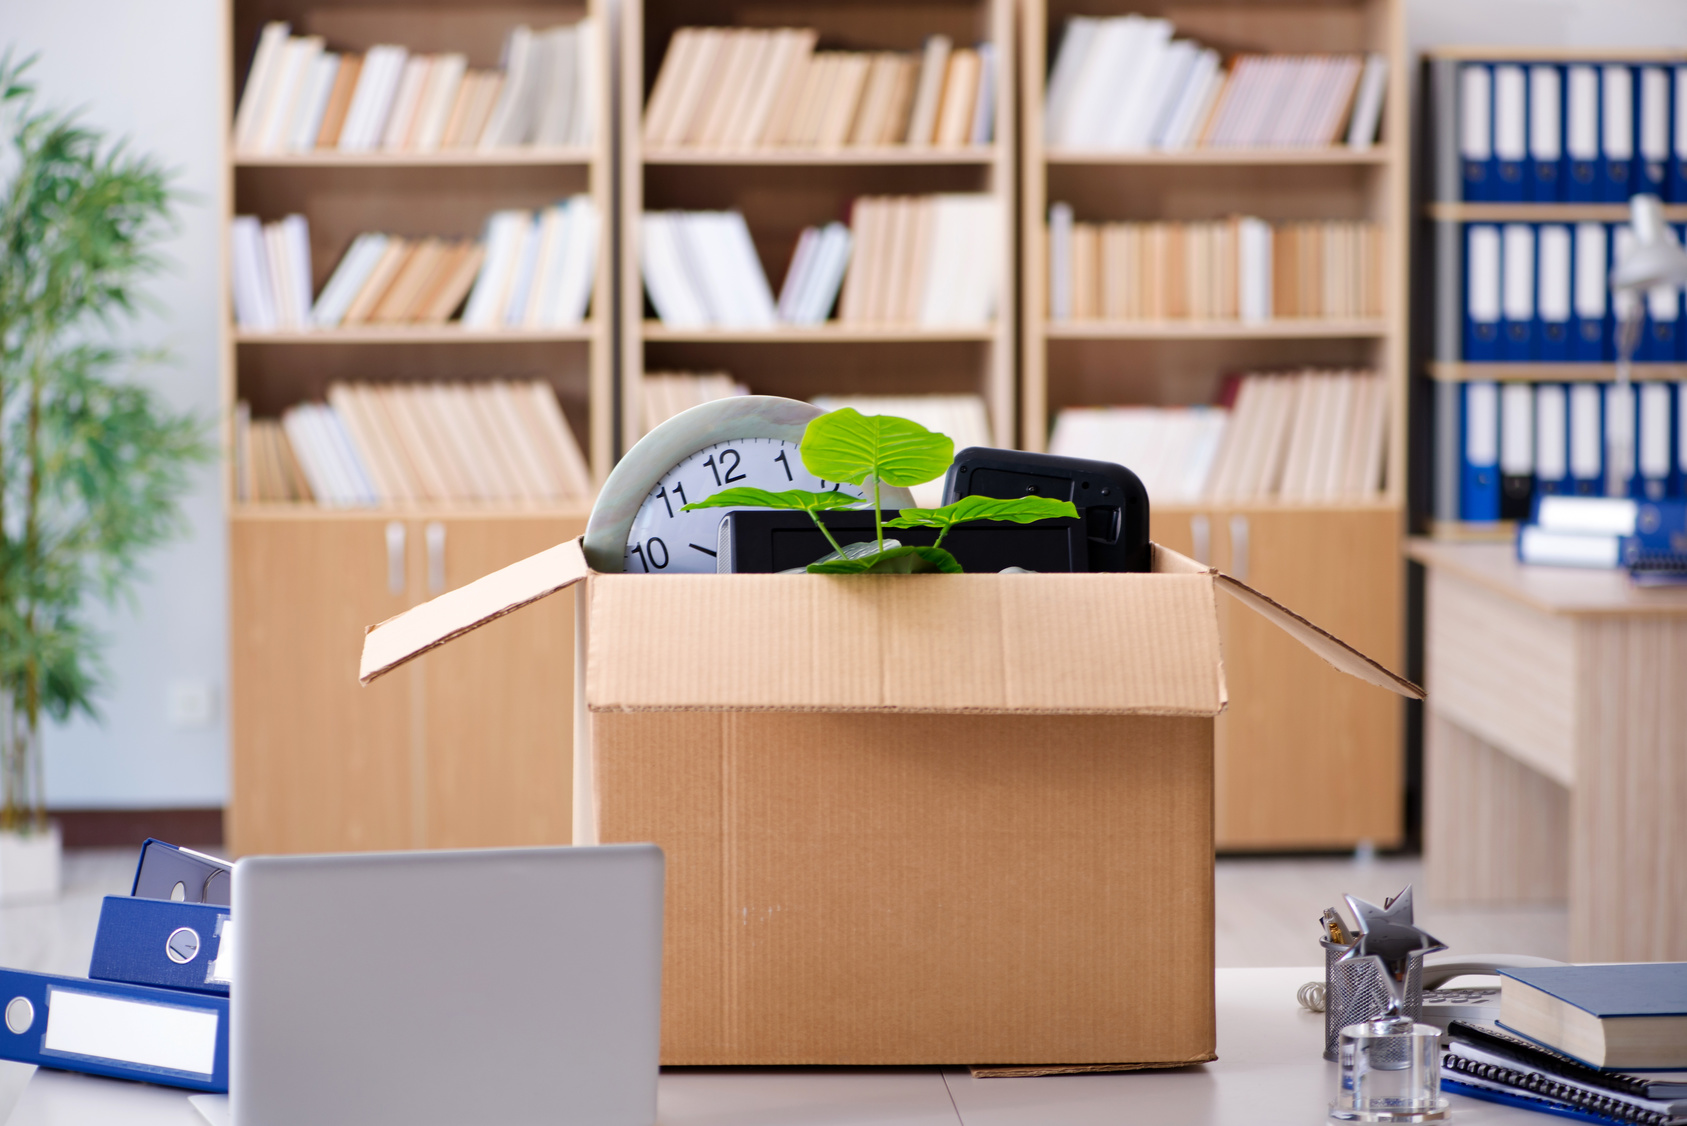 Box-of-Office-Items-on-Desk